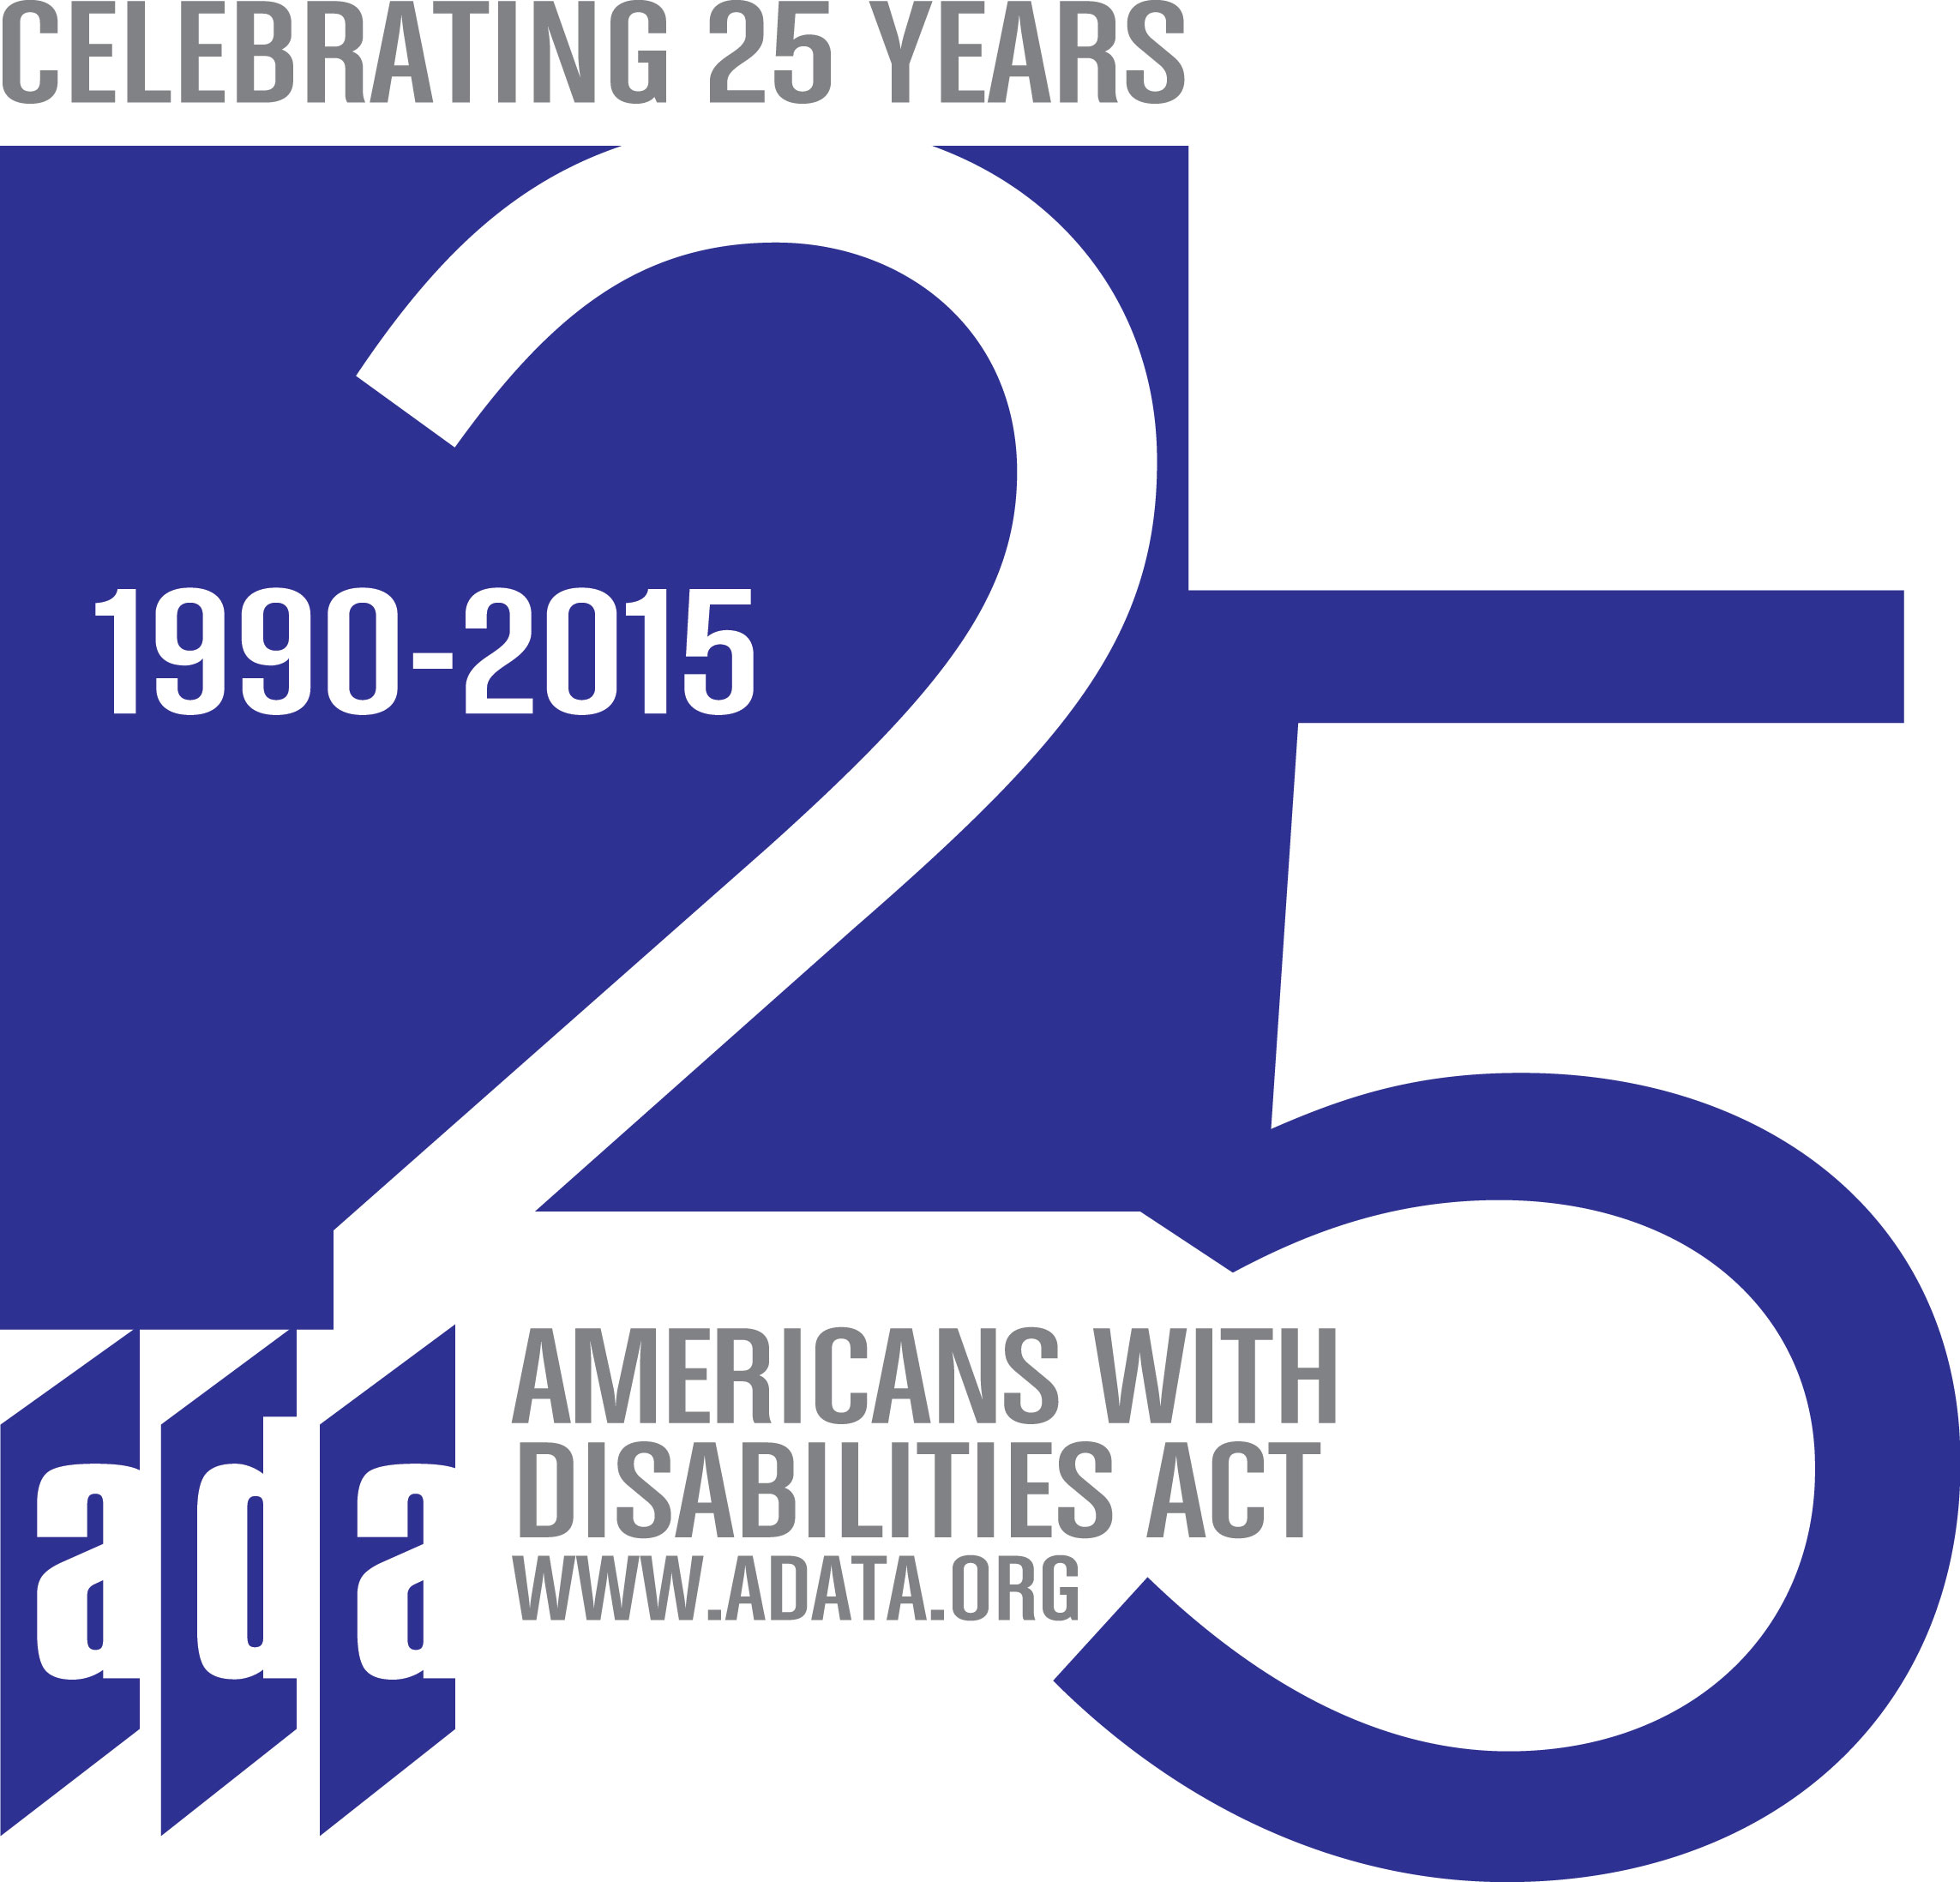 americans with disabilities act ada Students with disabilities & section 504 of the rehabilitation act of 1973 section 504 of the rehabilitation act of 1973 (commonly referred to as section 504) is a federal law designed to protect the rights of individuals with disabilities in programs and activities that receive federal financial assistance.